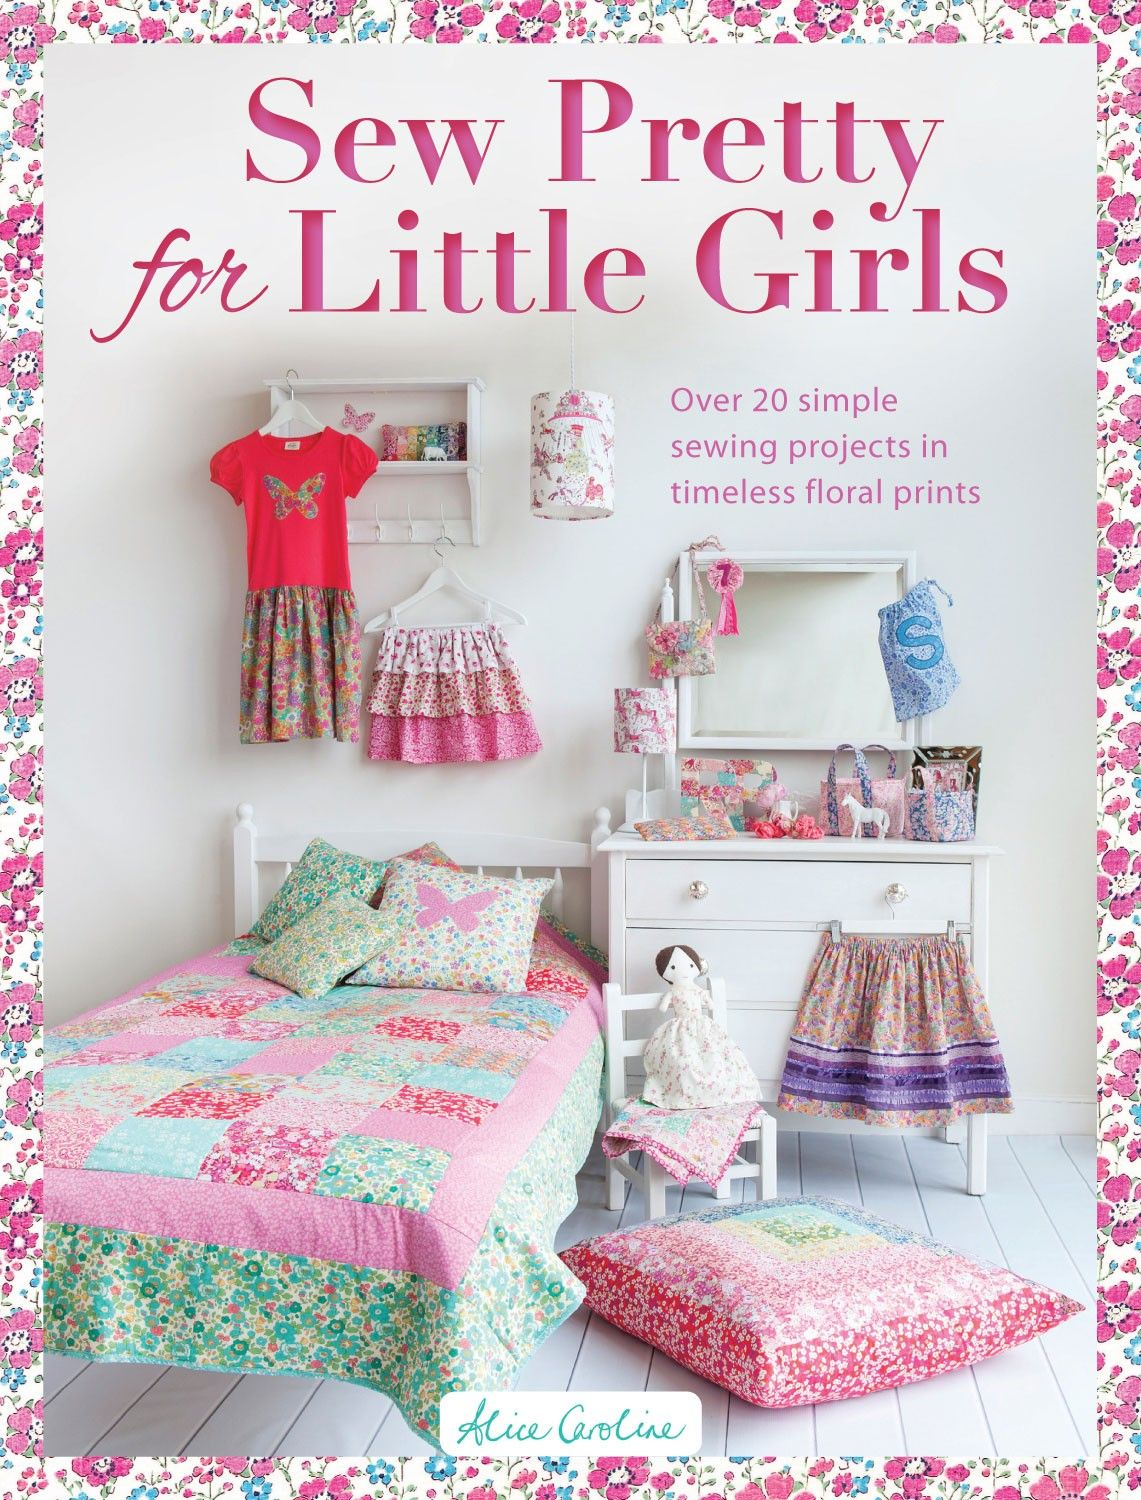 5c80ad81af8514 Make little girls' dreams come true with the prettiest sewing project |  InterweaveStore.com